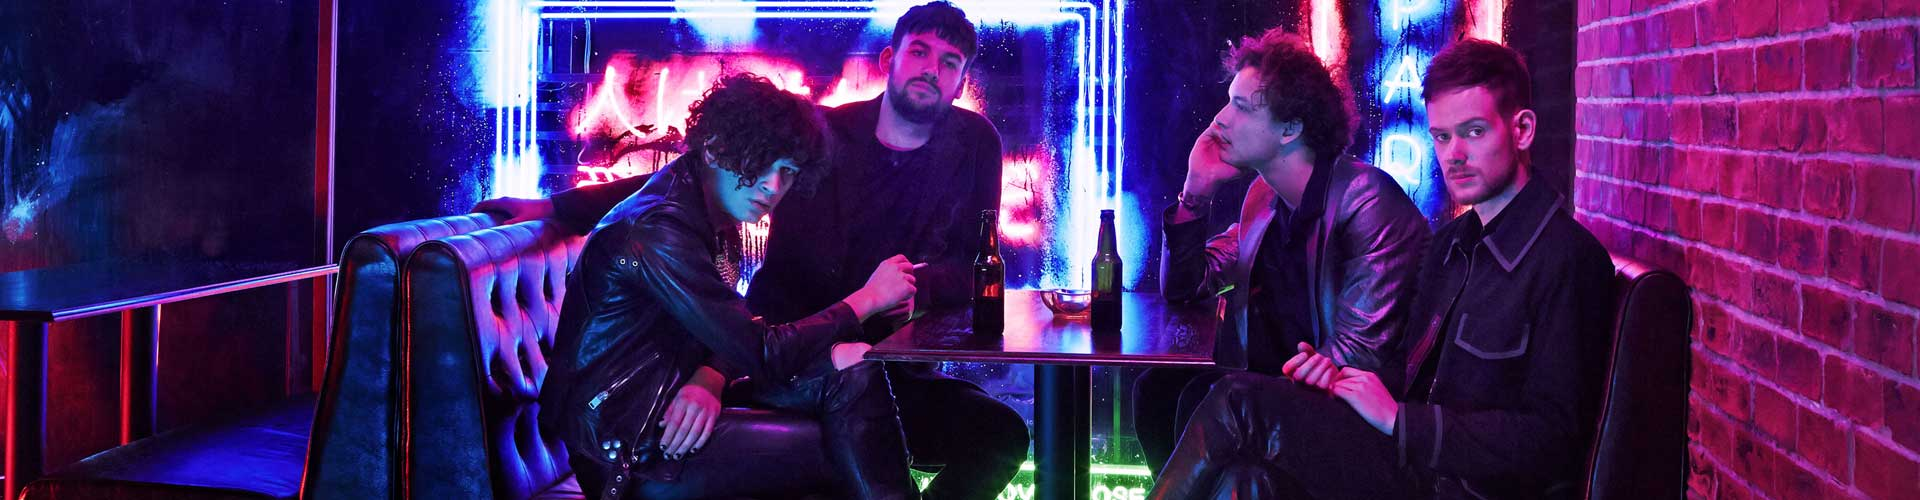 Video: The 1975 – The Sound